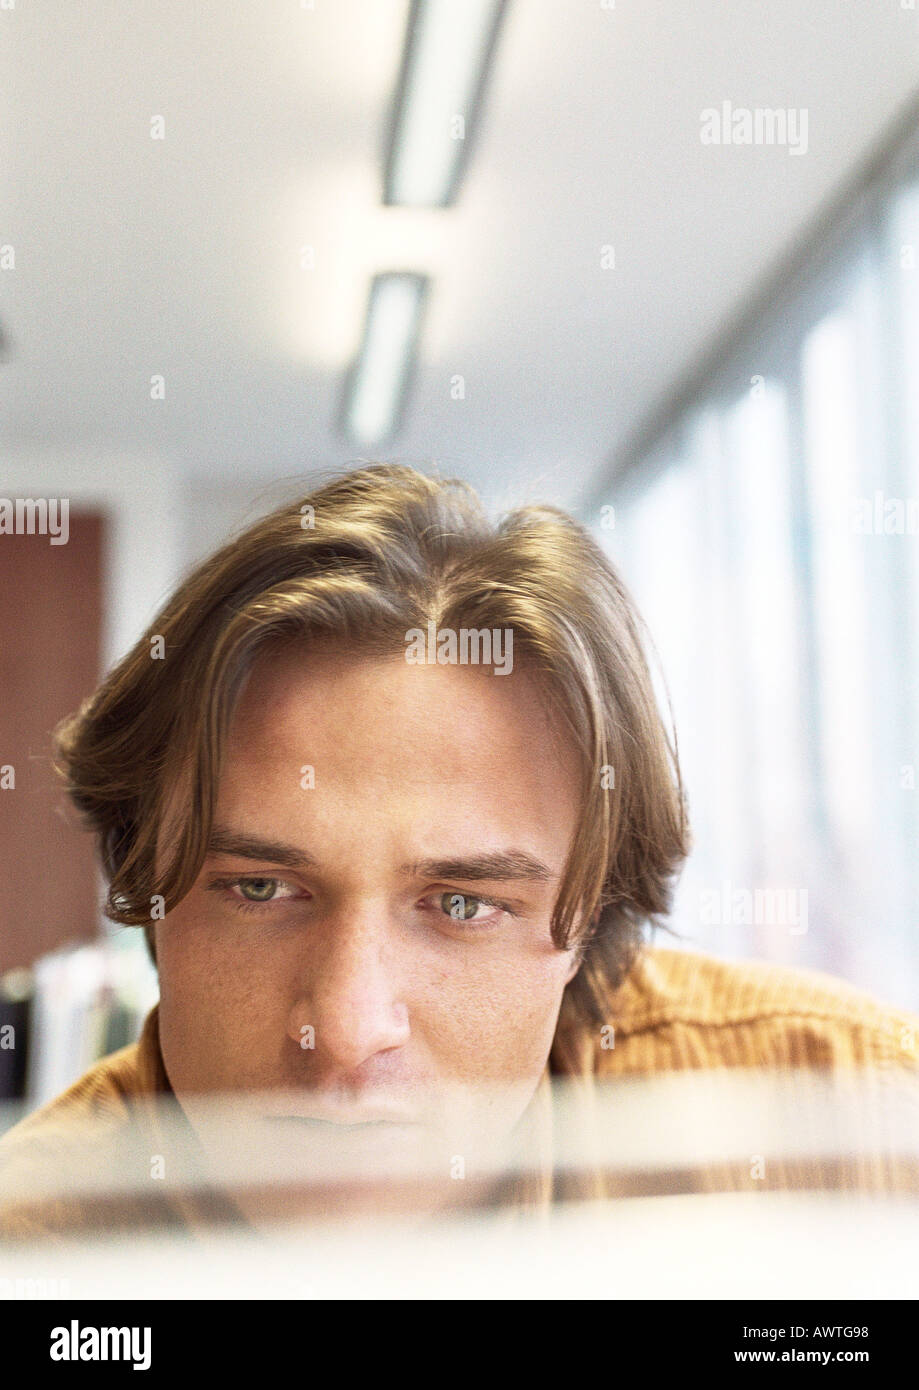 Businessman, close up. - Stock Image